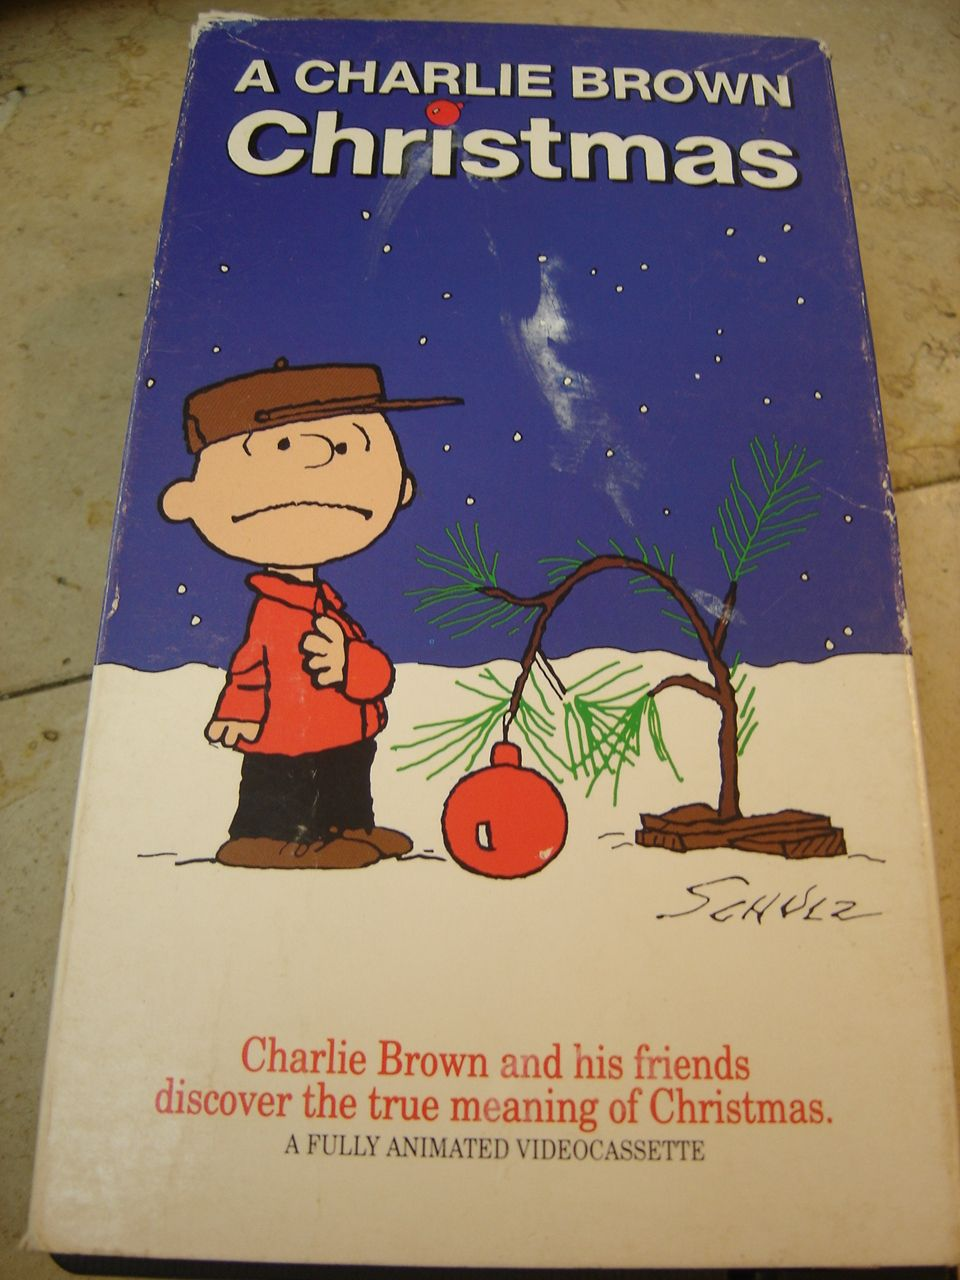 A Charlie Brown Christmas Vhs.Opening To A Charlie Brown Christmas 1981 Vhs Cbs Video